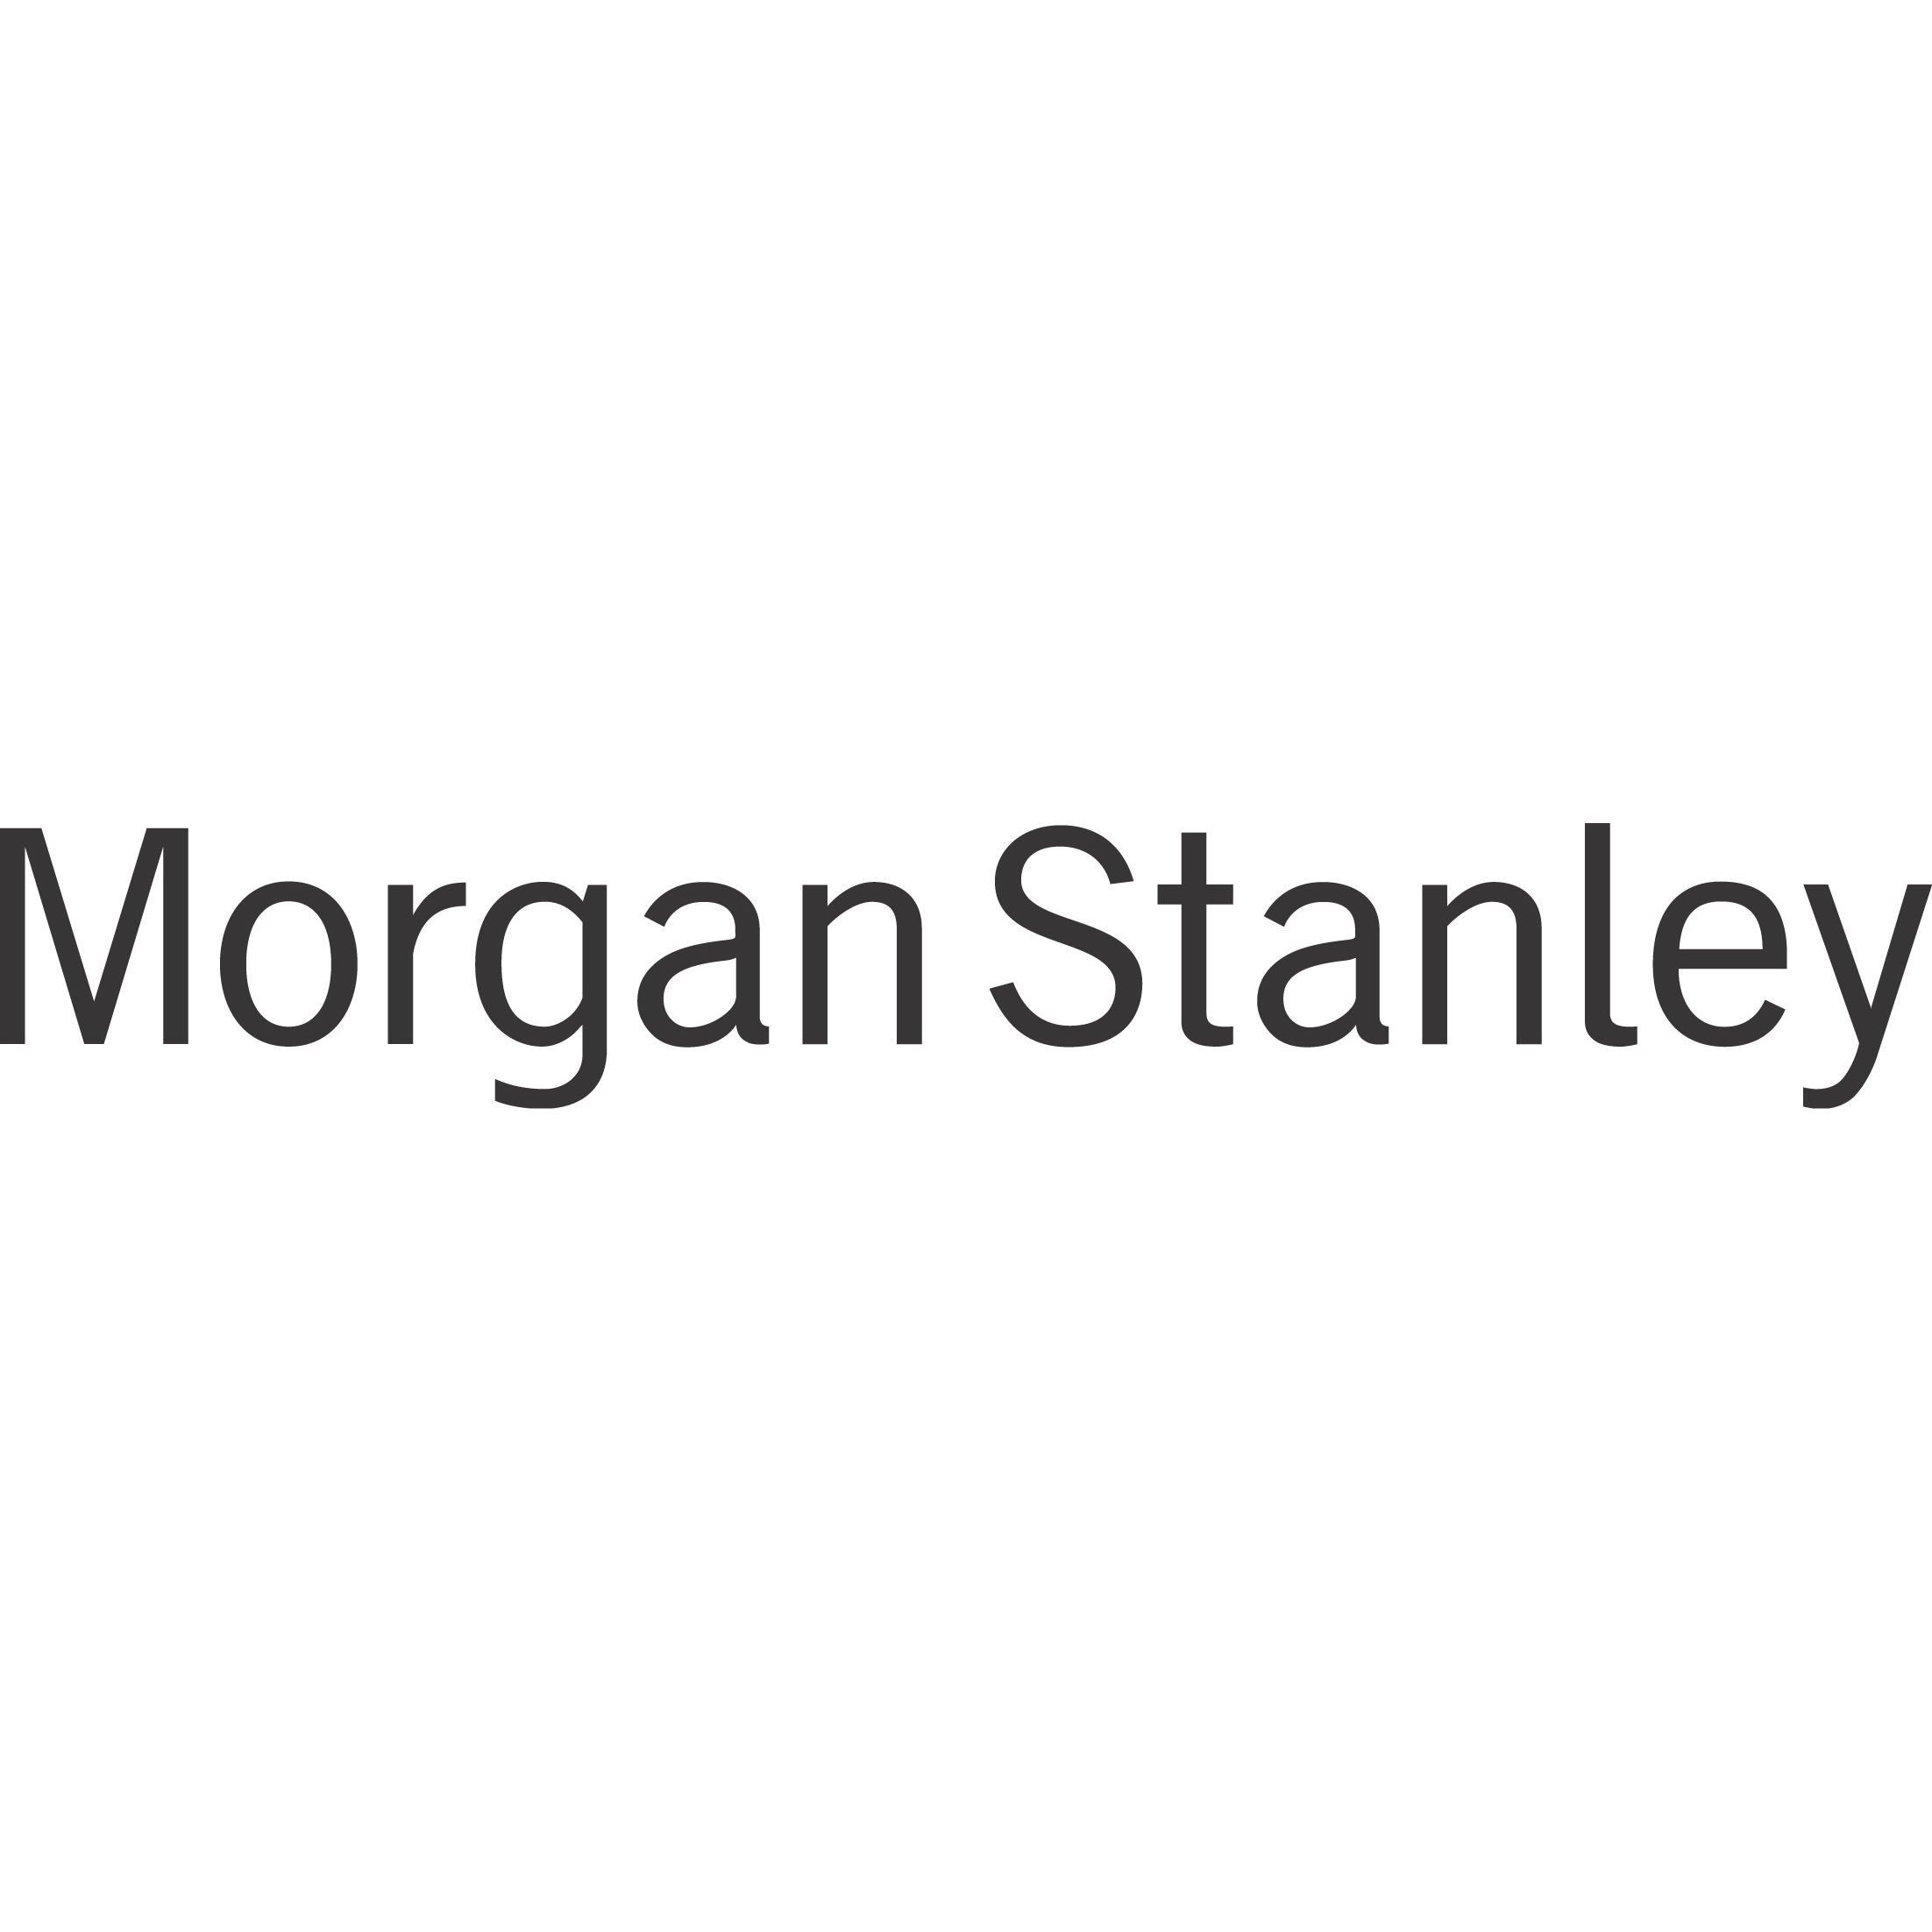 Rebecca S Bolletti - Morgan Stanley | Financial Advisor in Sarasota,Florida